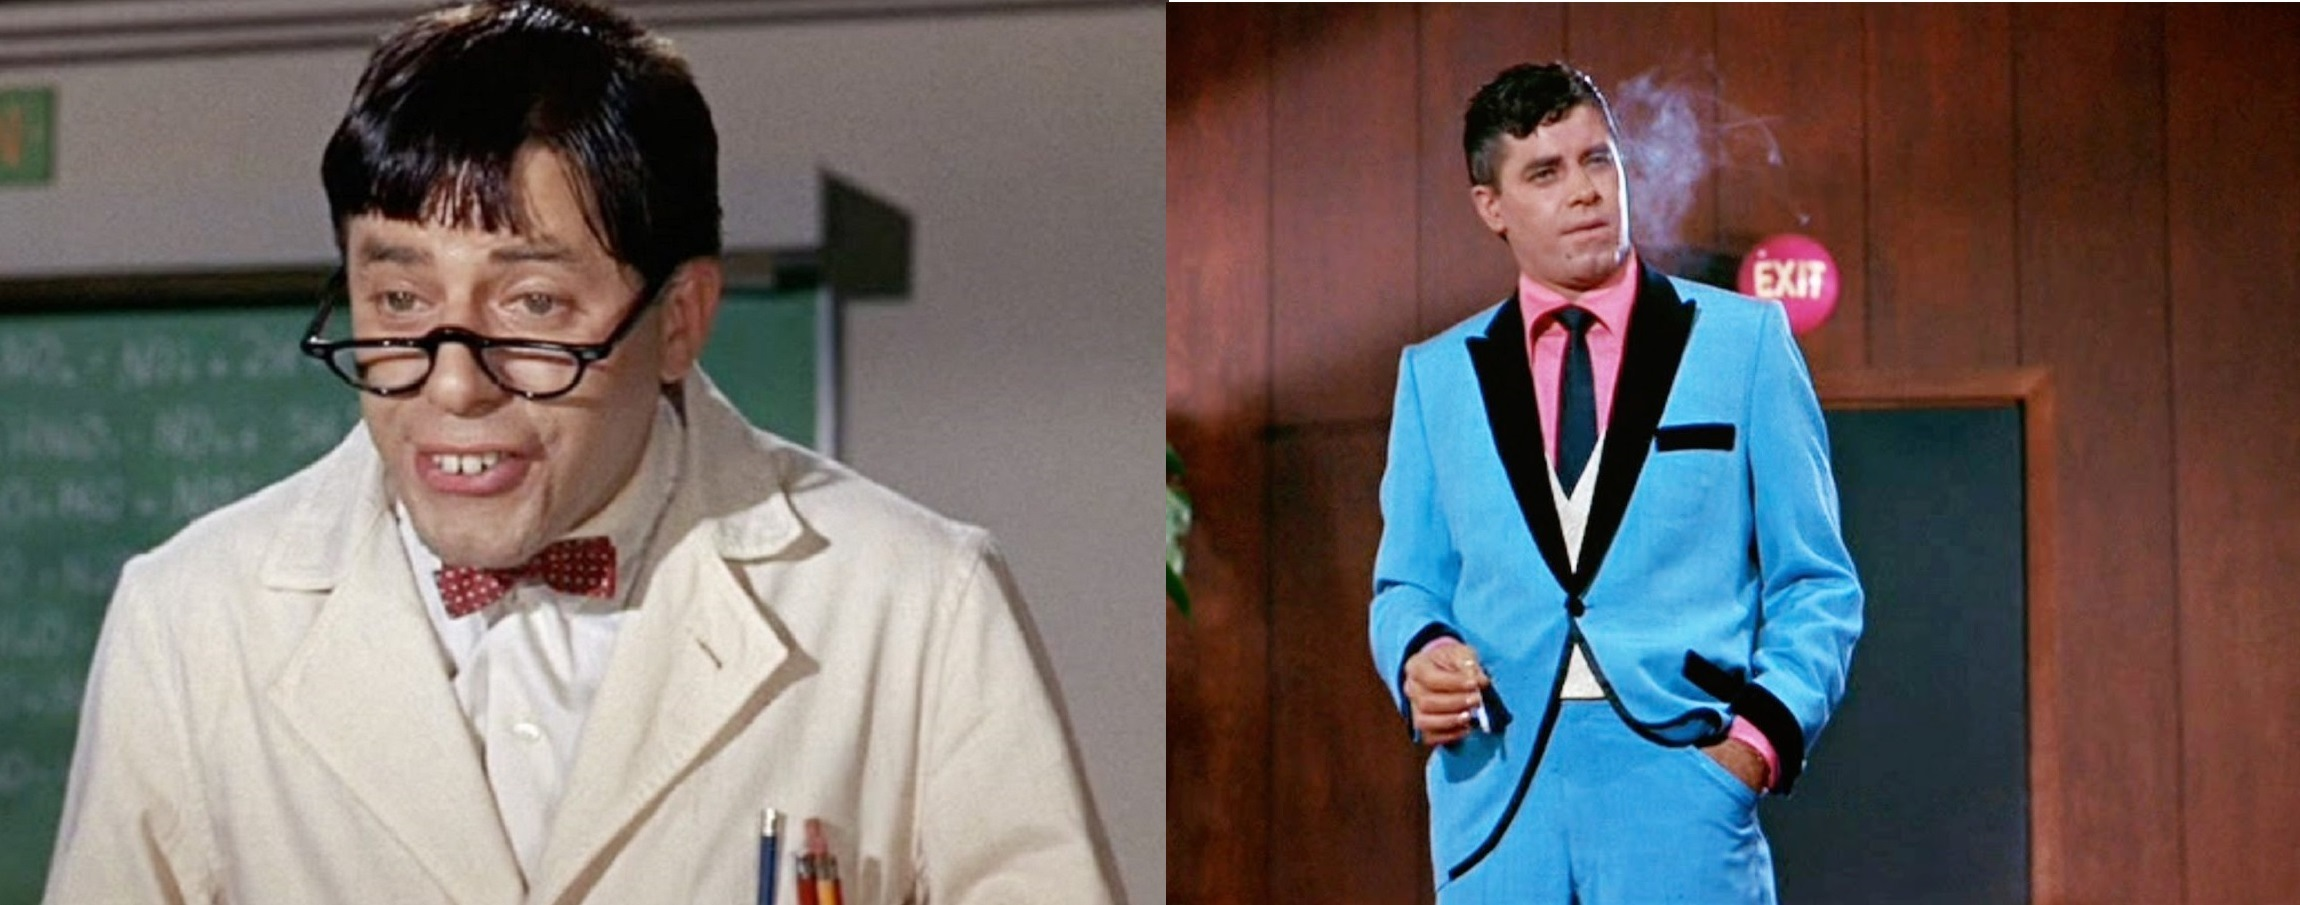 Jerry Lewis as Professor Julius Kelp and Buddy Love in The Nutty Professor (1963)